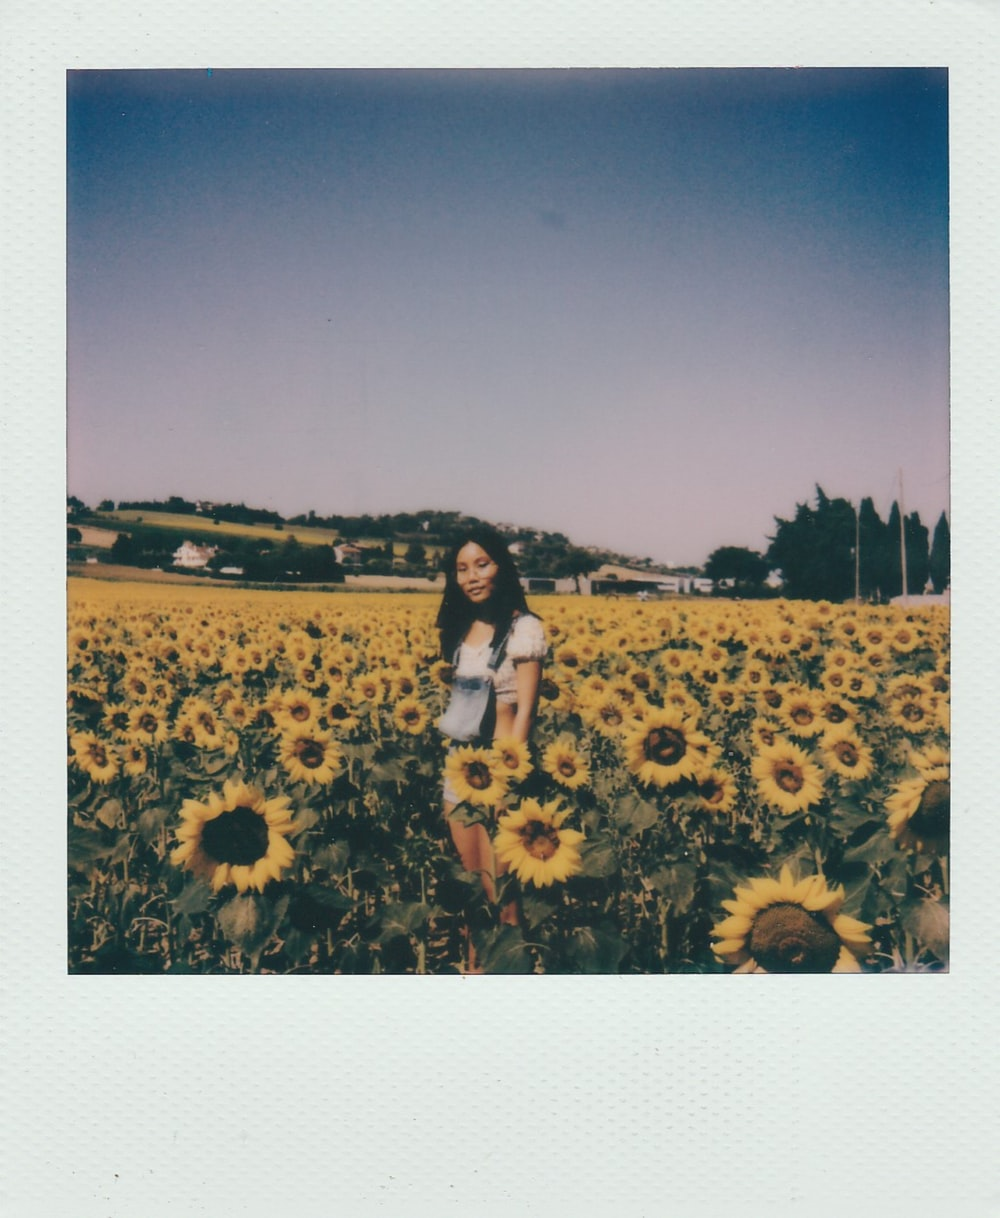 woman in black tank top and white shorts standing on sunflower field during daytime